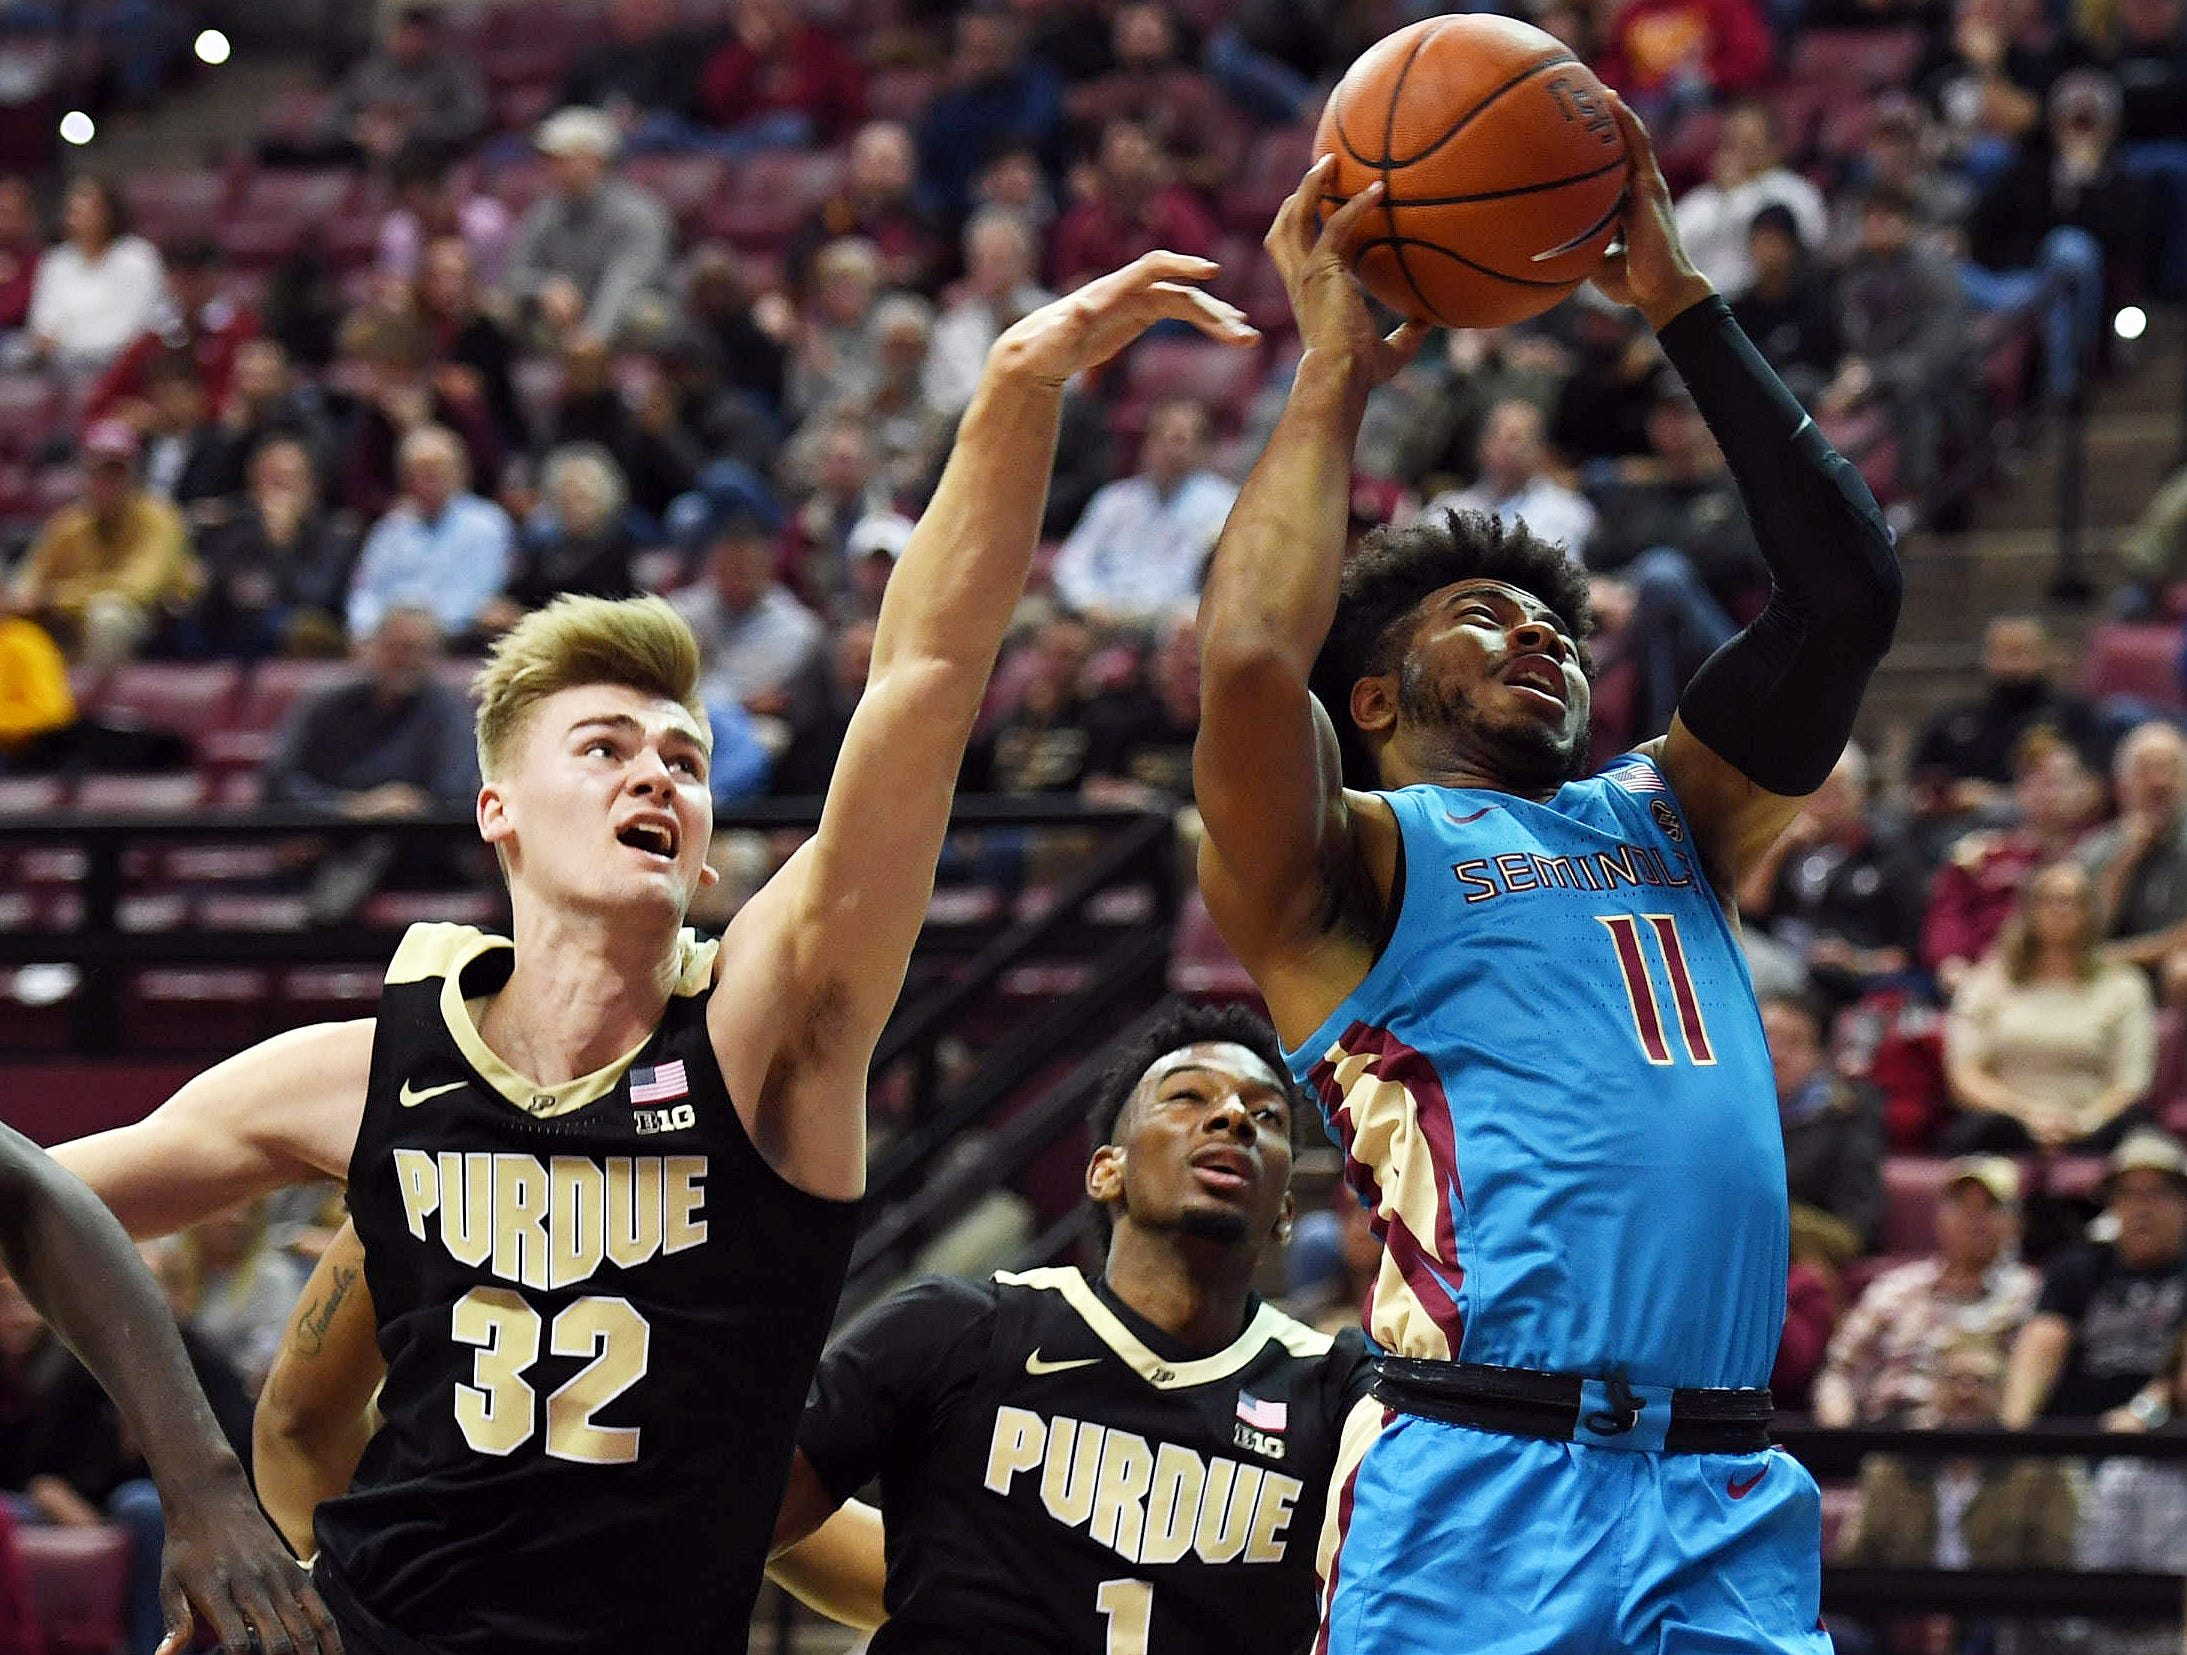 Nov 28, 2018; Tallahassee, FL, USA; Florida State Seminoles guard David Nichols (11) shoots against Purdue Boilermakers center Matt Haarms (32) during the first half at Donald L. Tucker Center. Mandatory Credit: Melina Myers-USA TODAY Sports